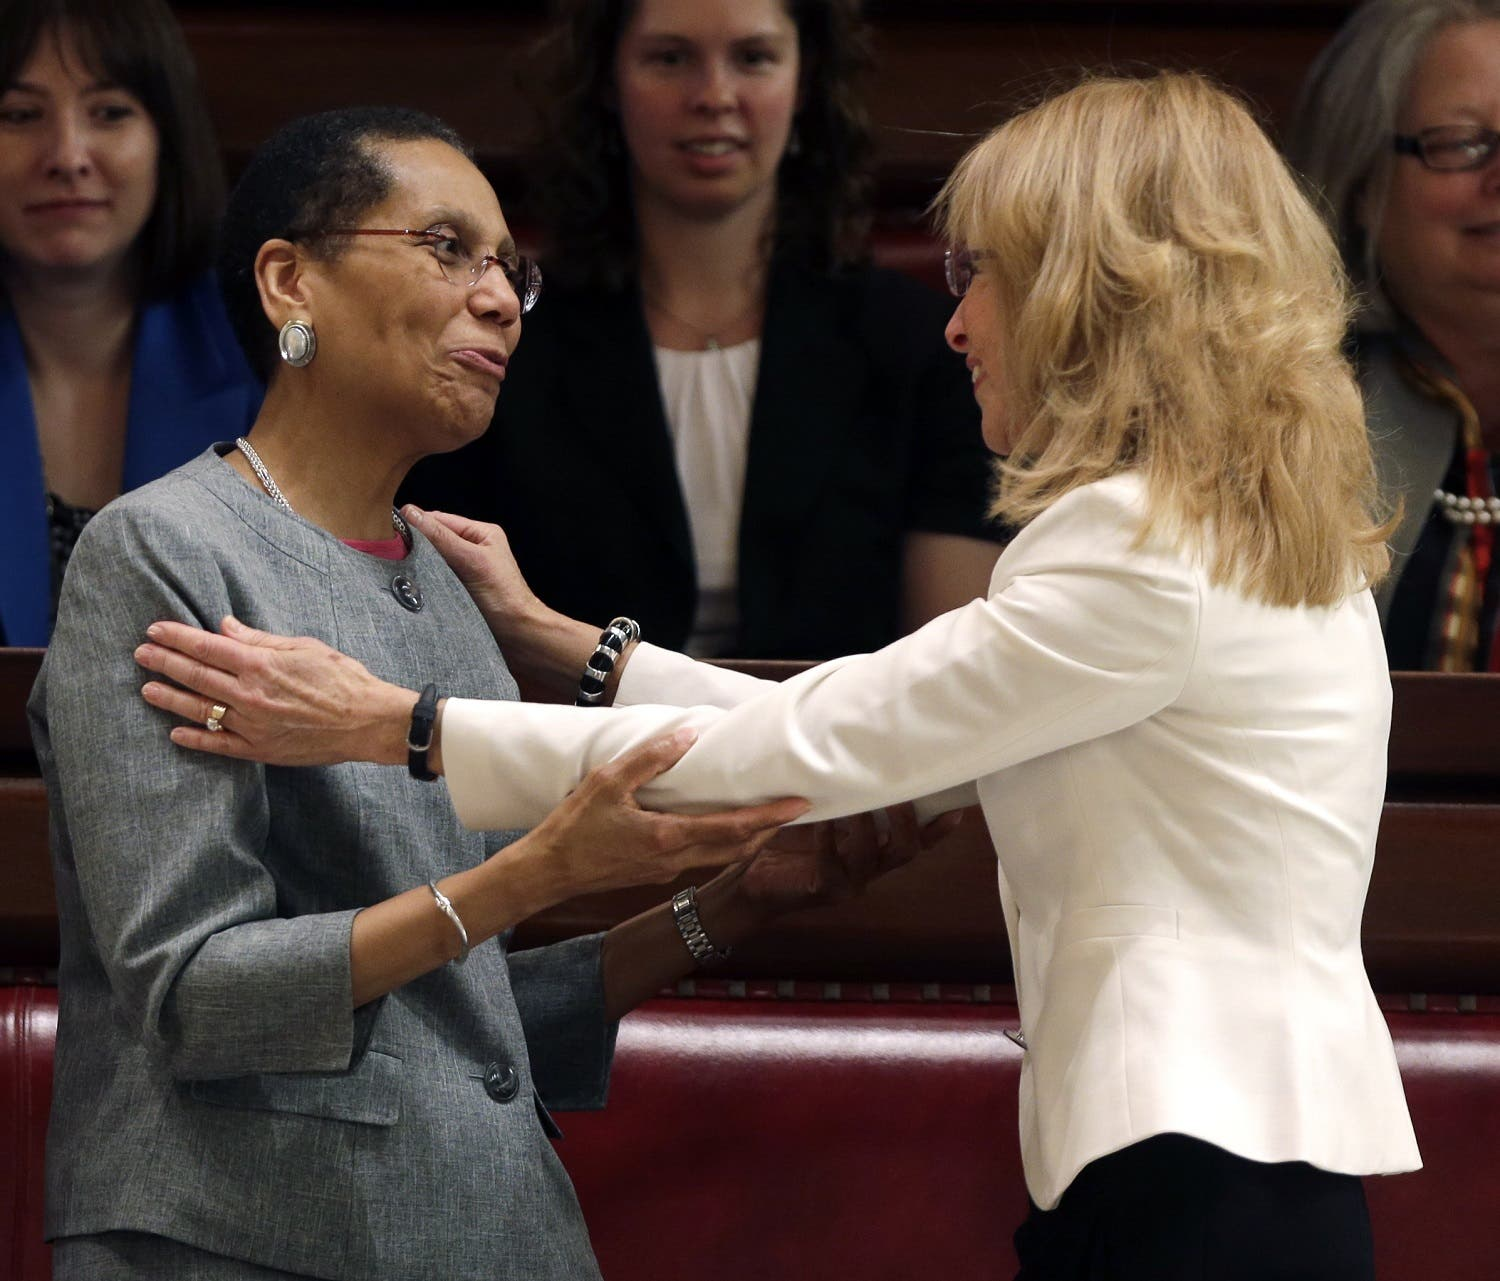 Justice Sheila Abdus-Salaam, left, is congratulated after being confirmed to serve on the New York State Court of Appeals by friend and Albany City Court Judge Rachel Kretser, on May 6, 2013, in Albany, N.Y. (AP)